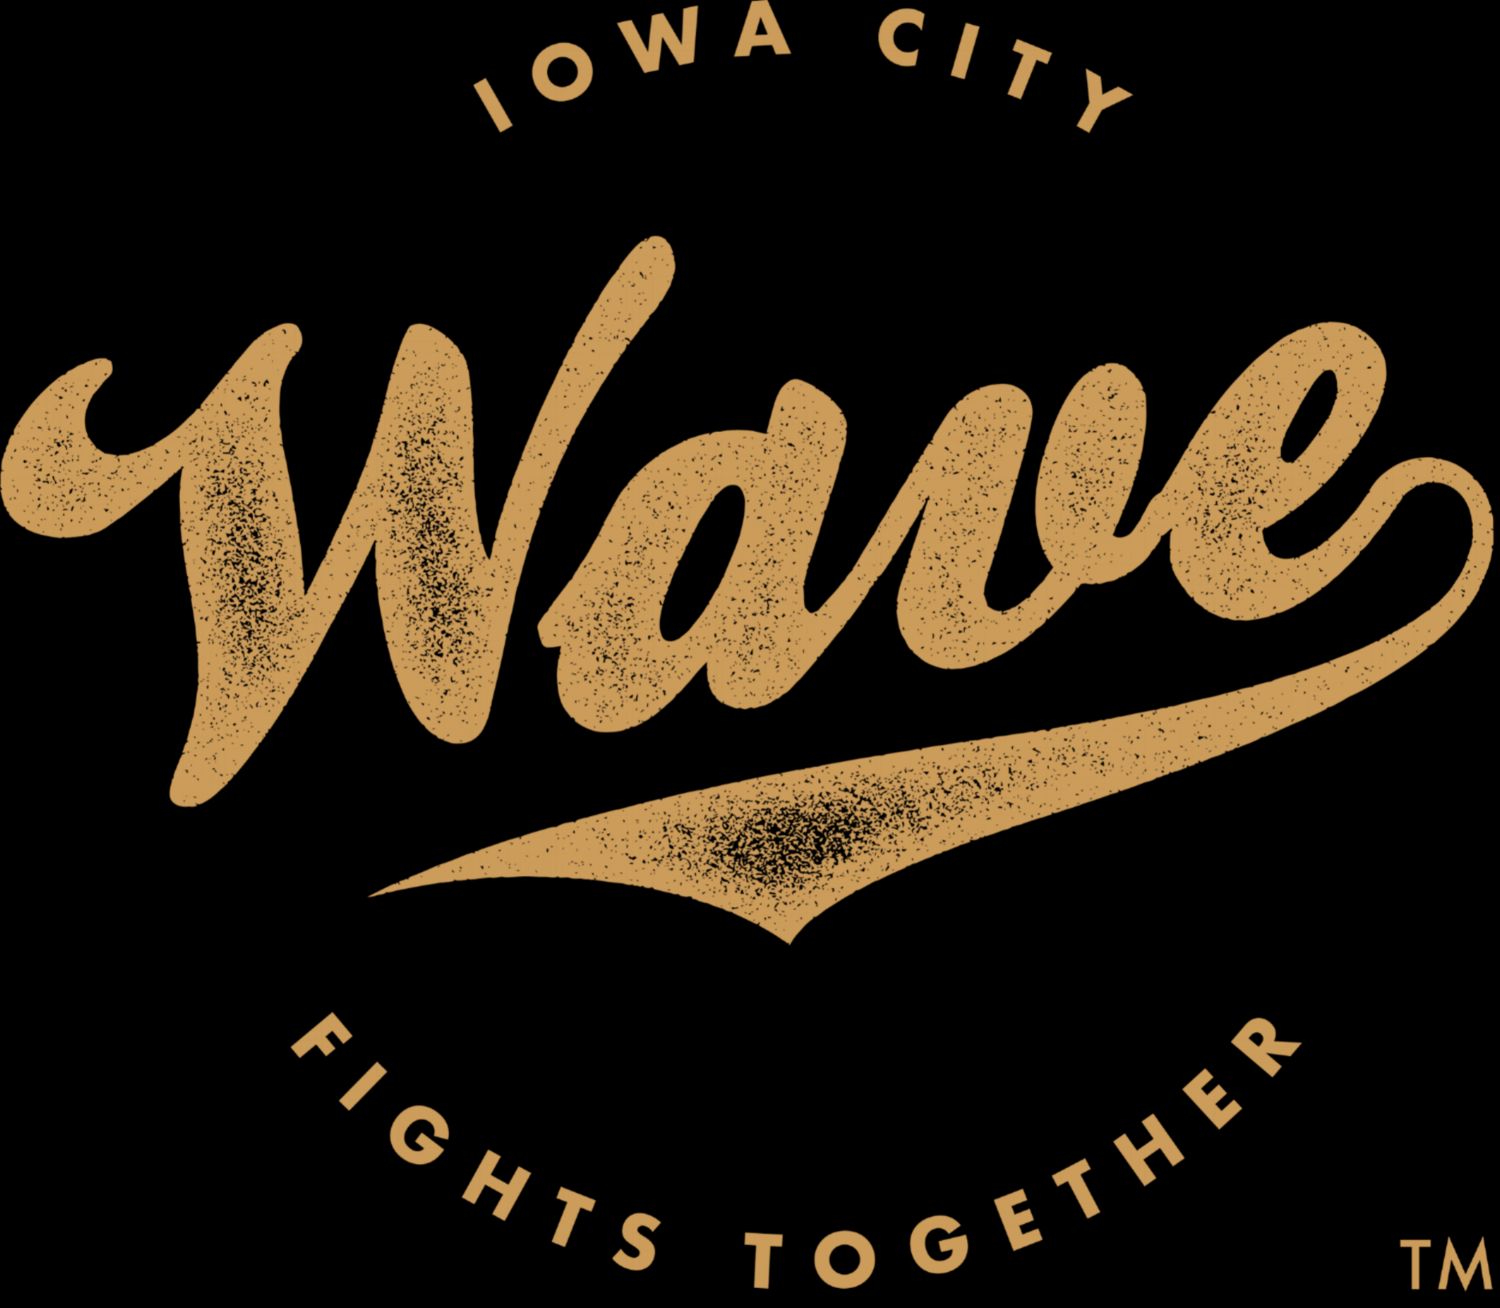 The IOWA Wave Shirt